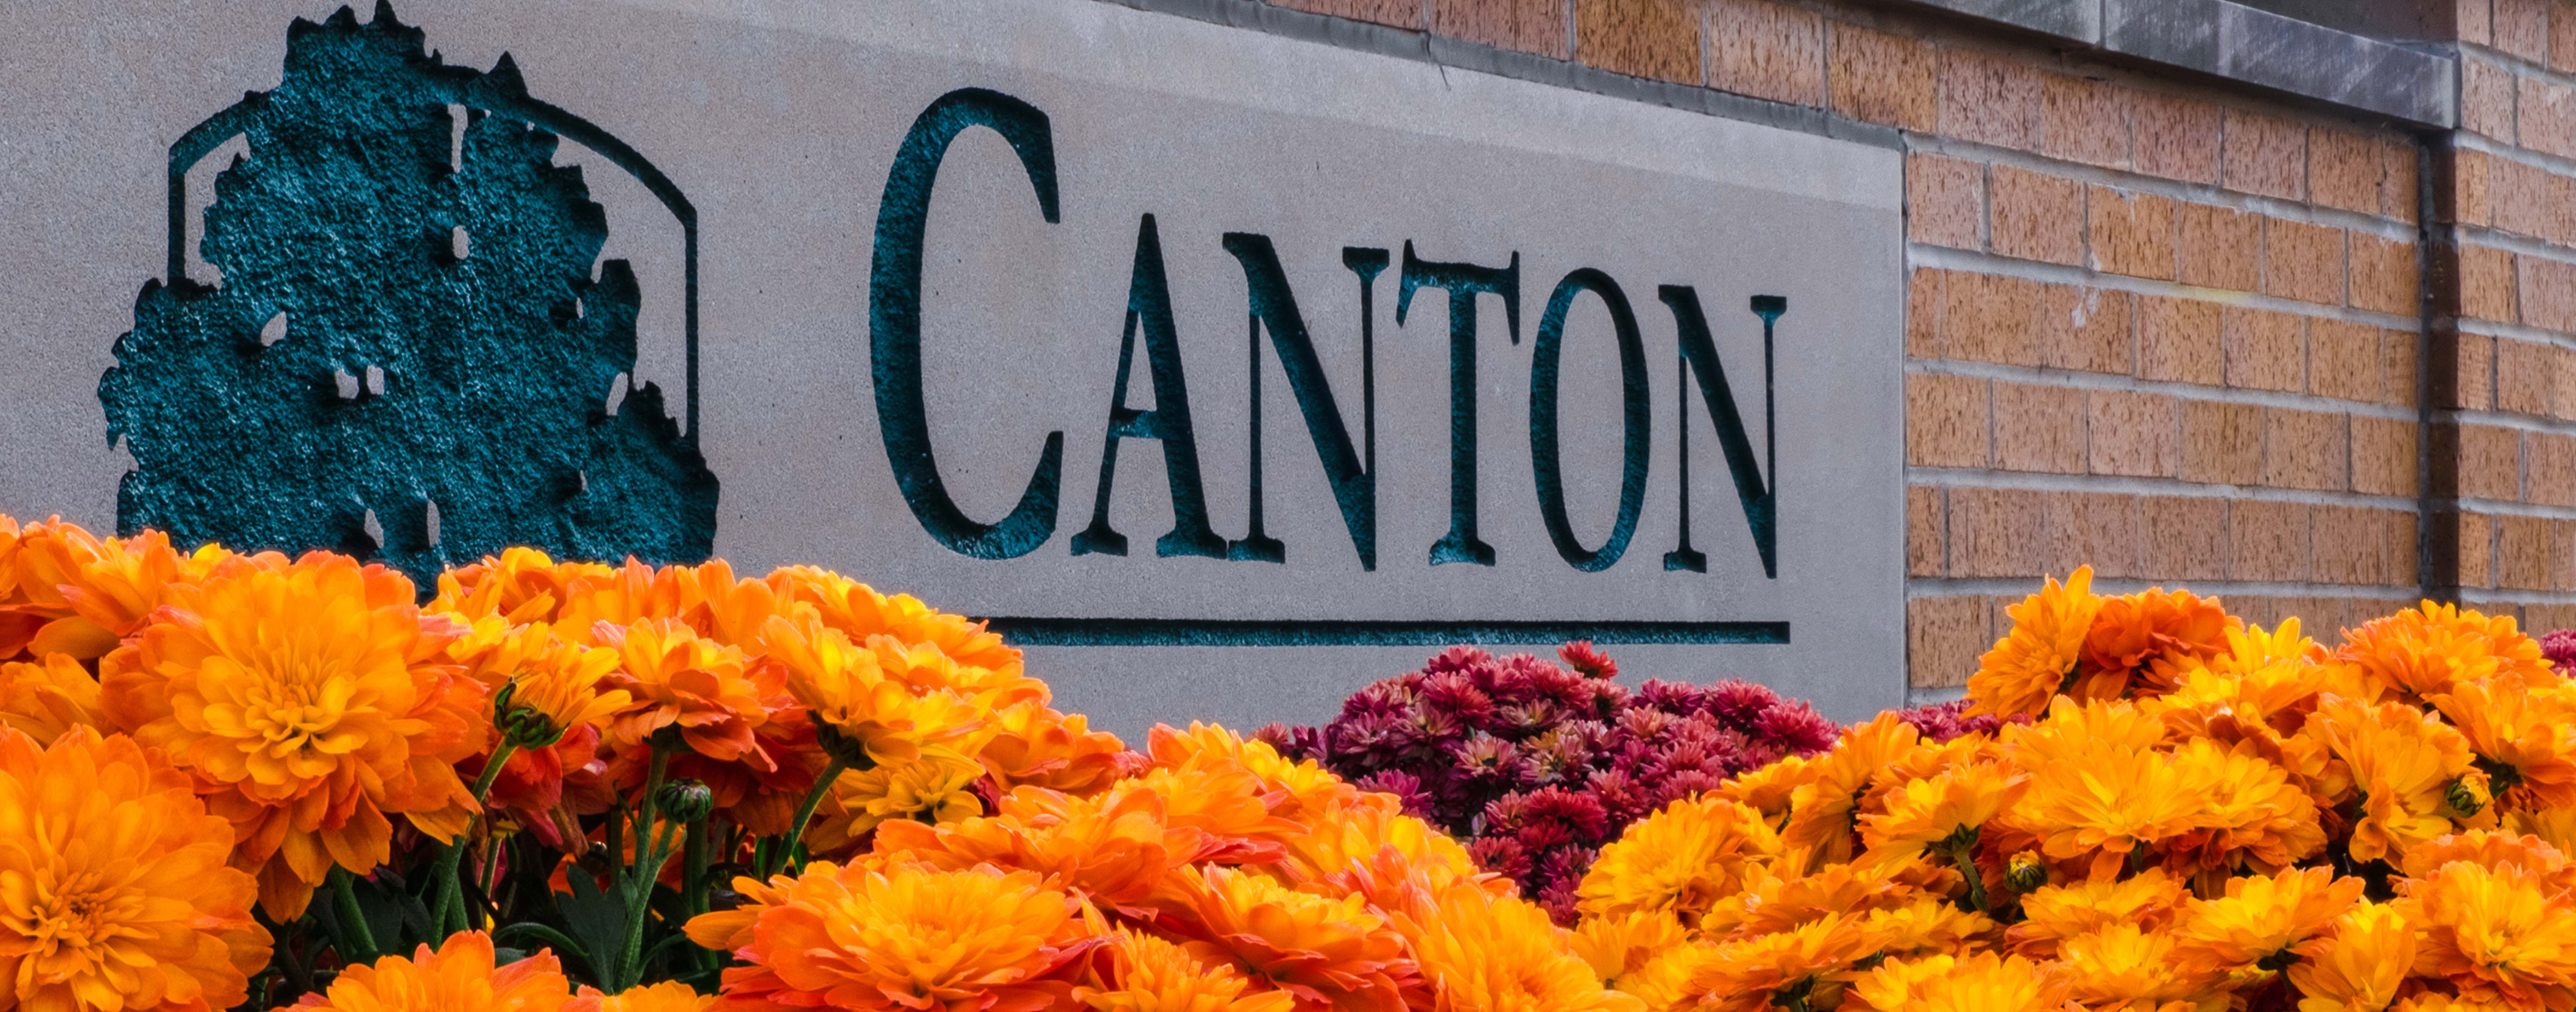 The sign welcoming you to Canton Township, Michigan.